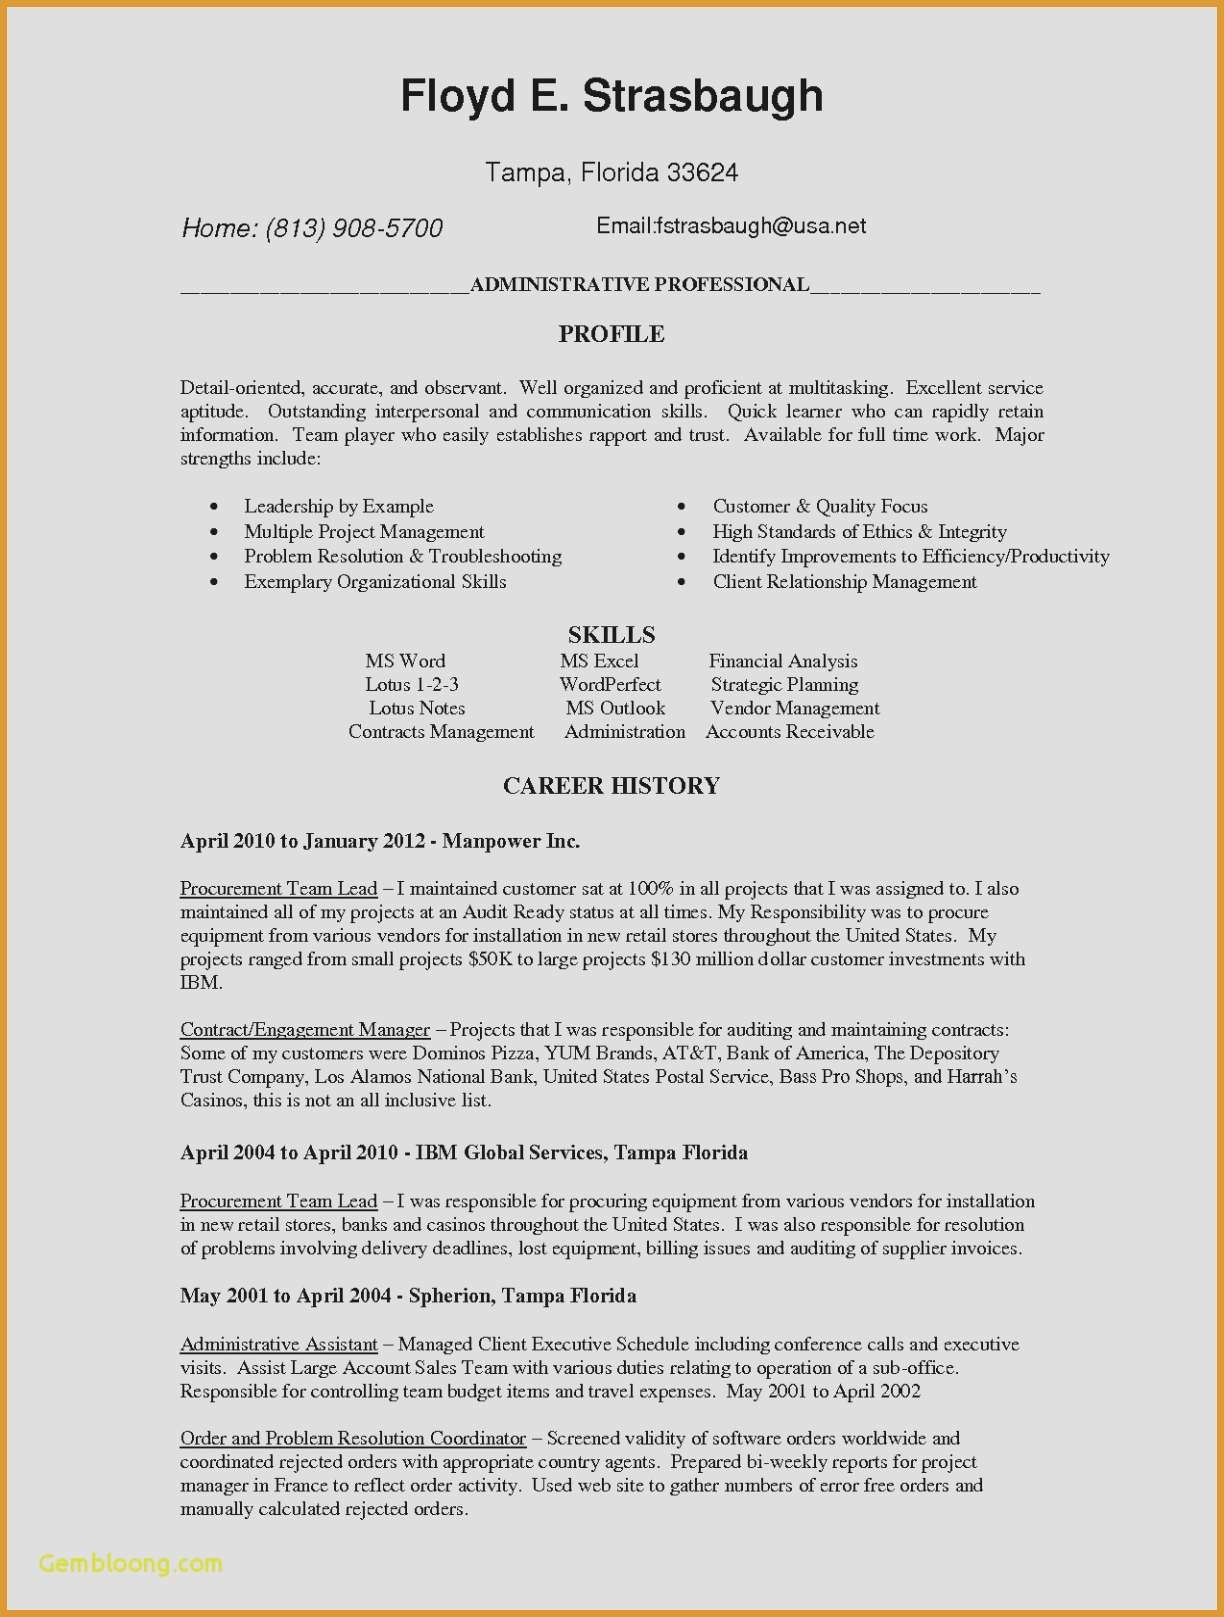 Cover Letter Template Fill In - Fill In Resume Elegant Cover Letter Resume Fresh Resume Cover Letter